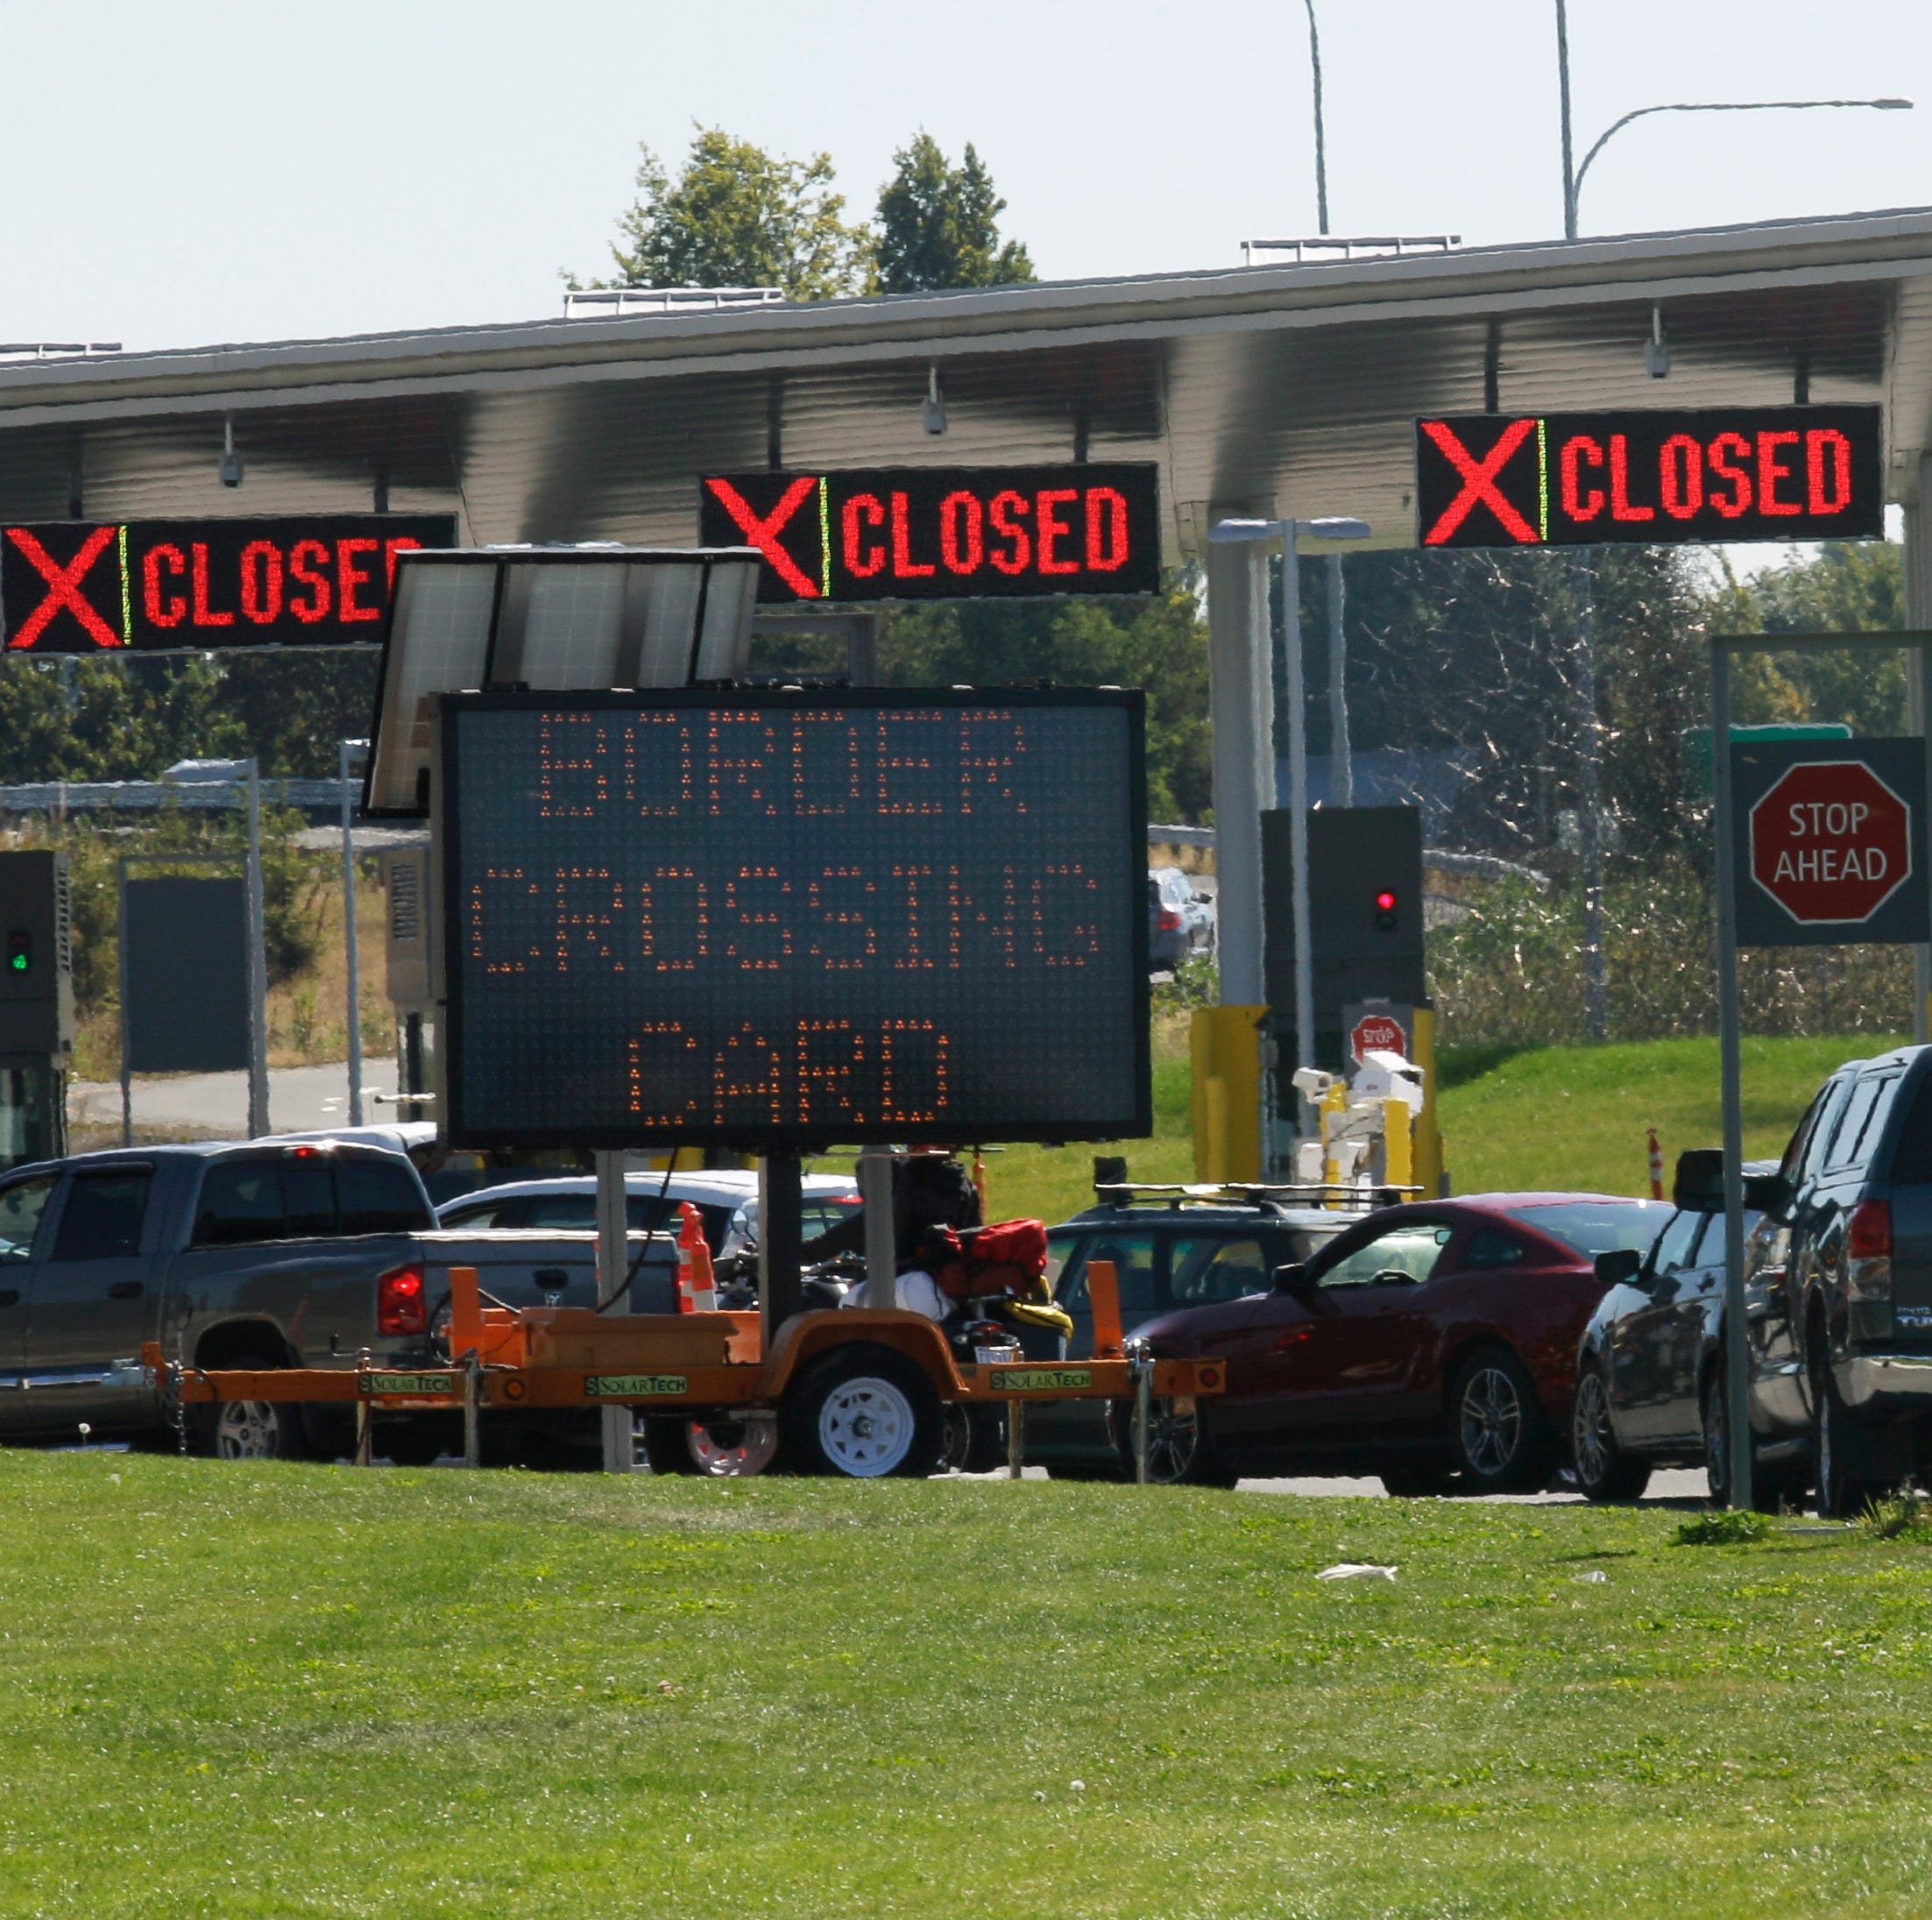 Cars waiting to enter the United States from Canada, line up at a border checkpoint, Wednesday, Sept. 7, 2011, near Blaine, Wash. The increased focus on border security since the Sept. 11, 2001 terrorist attacks has led to tensions between the government and local residents in the area.